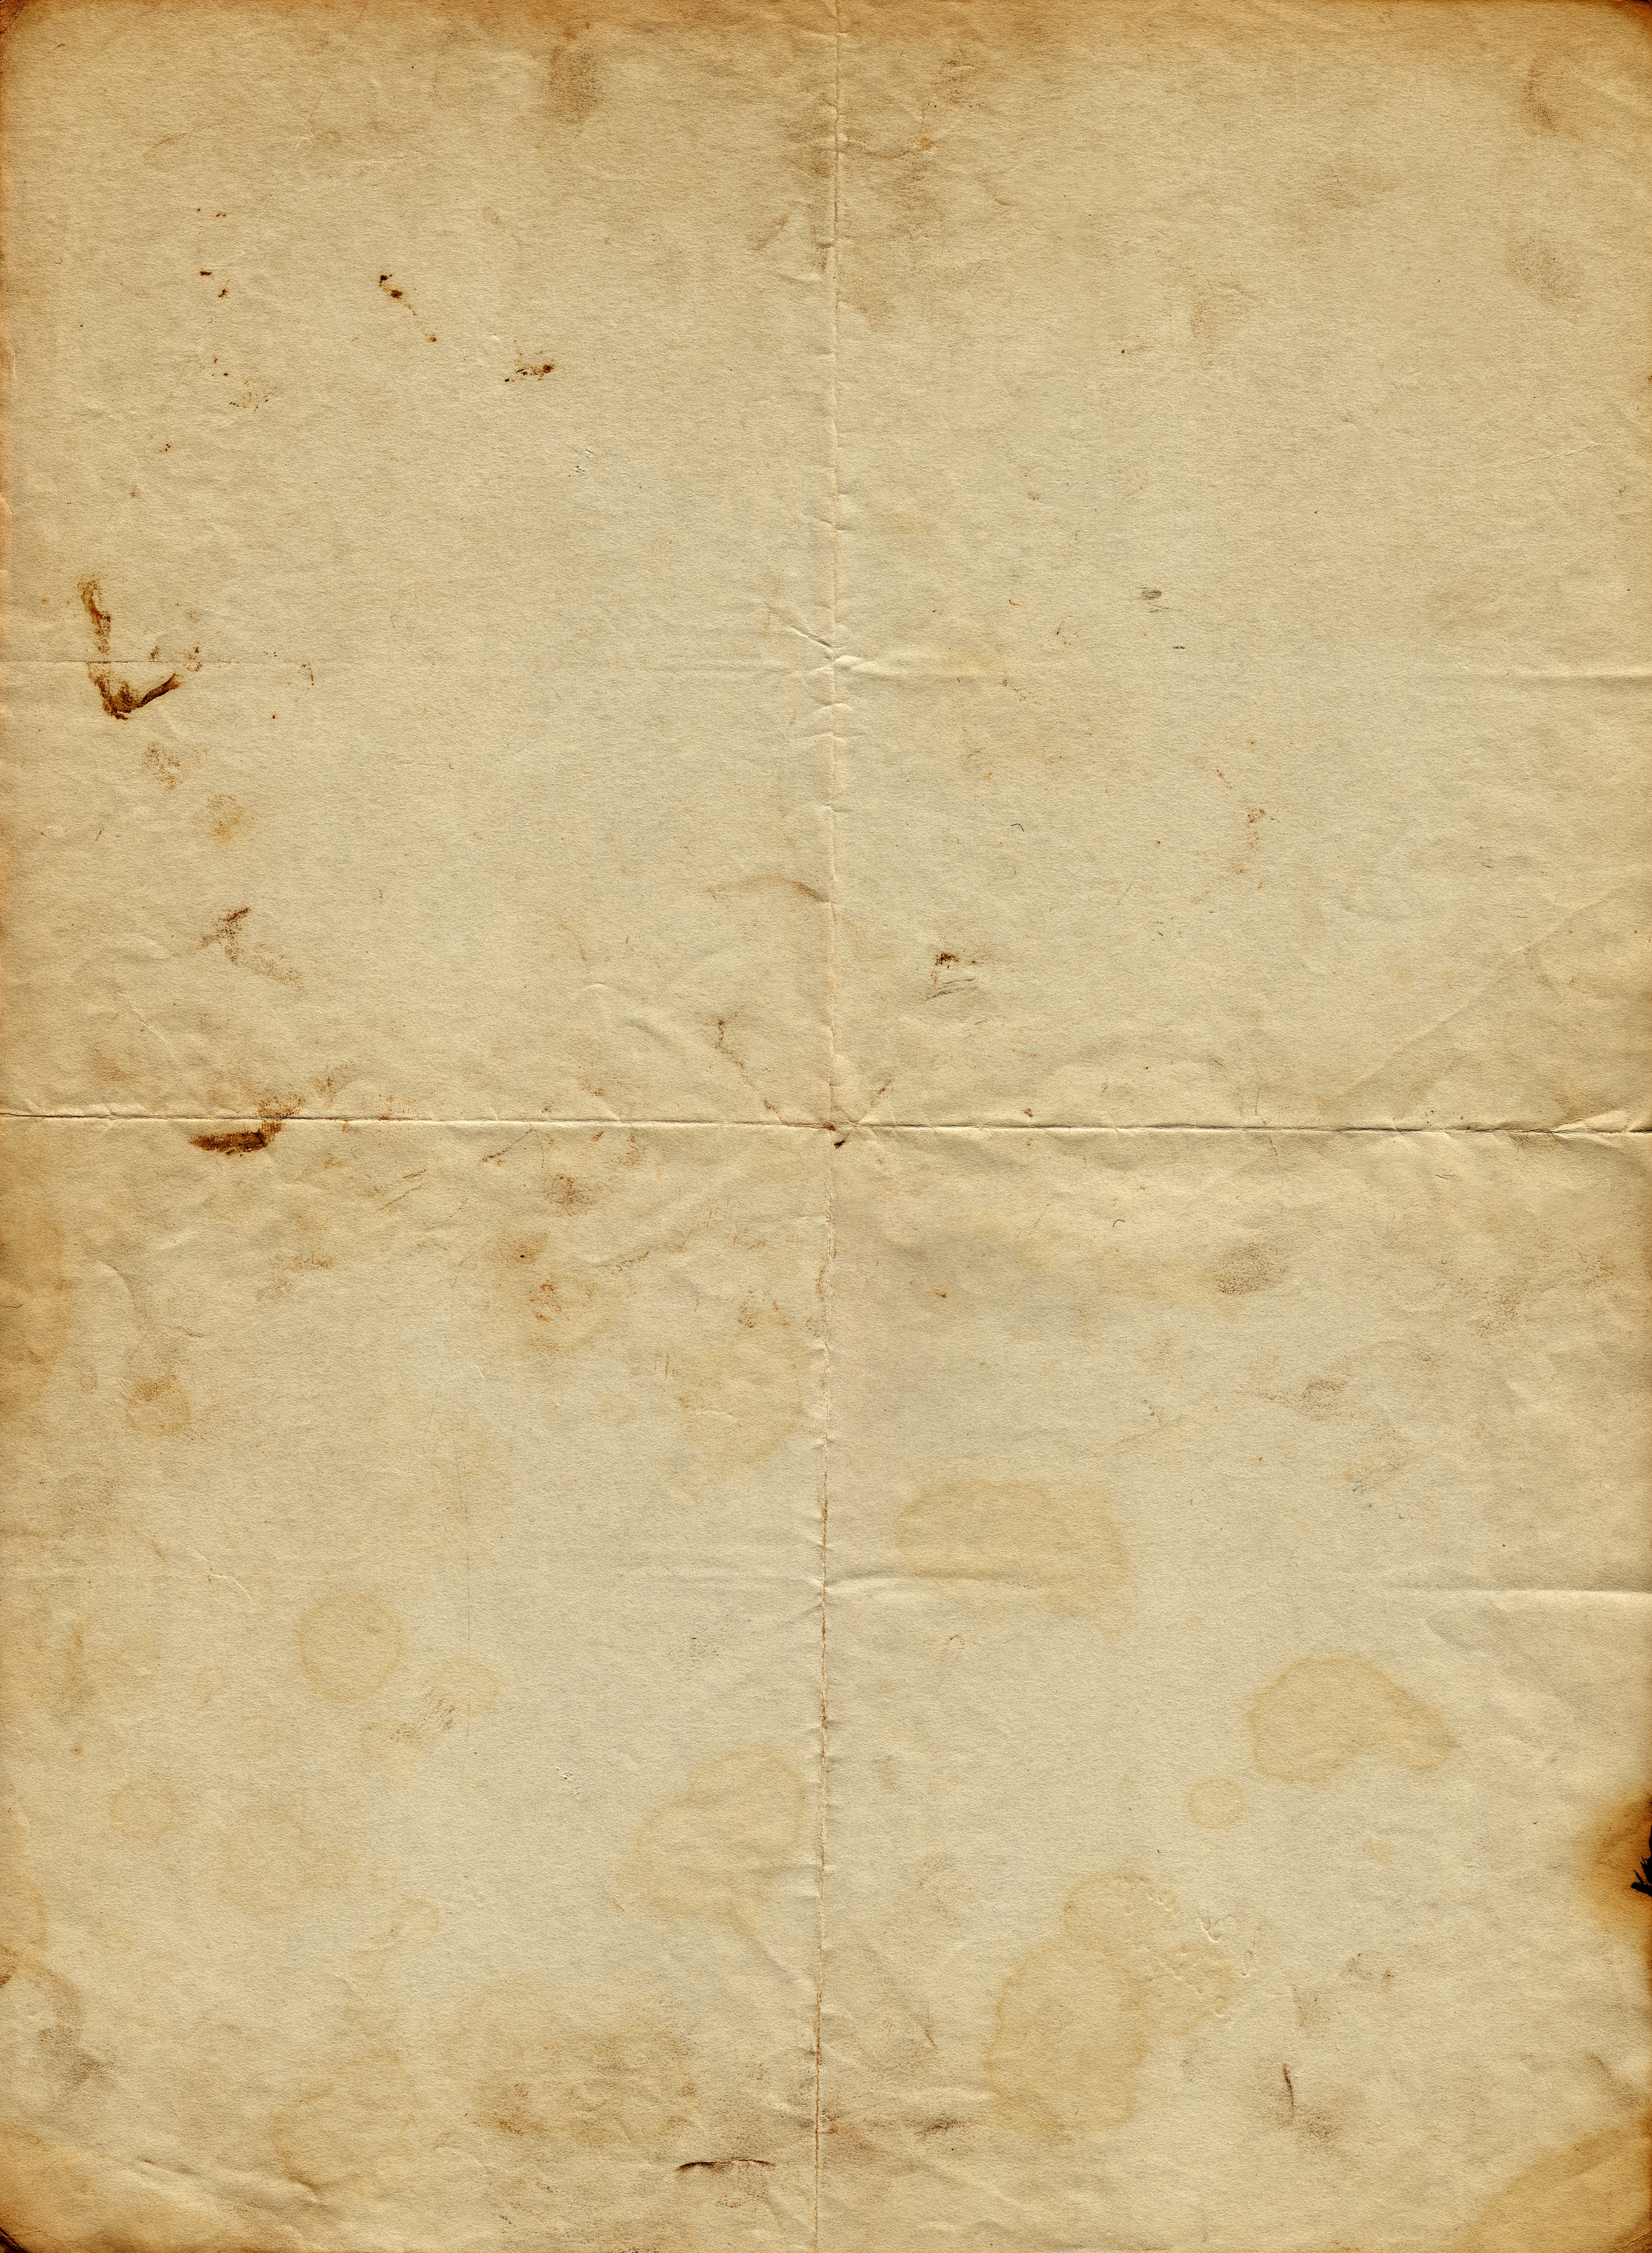 Grungy paper texture v.15 by bashcorpo on DeviantArt